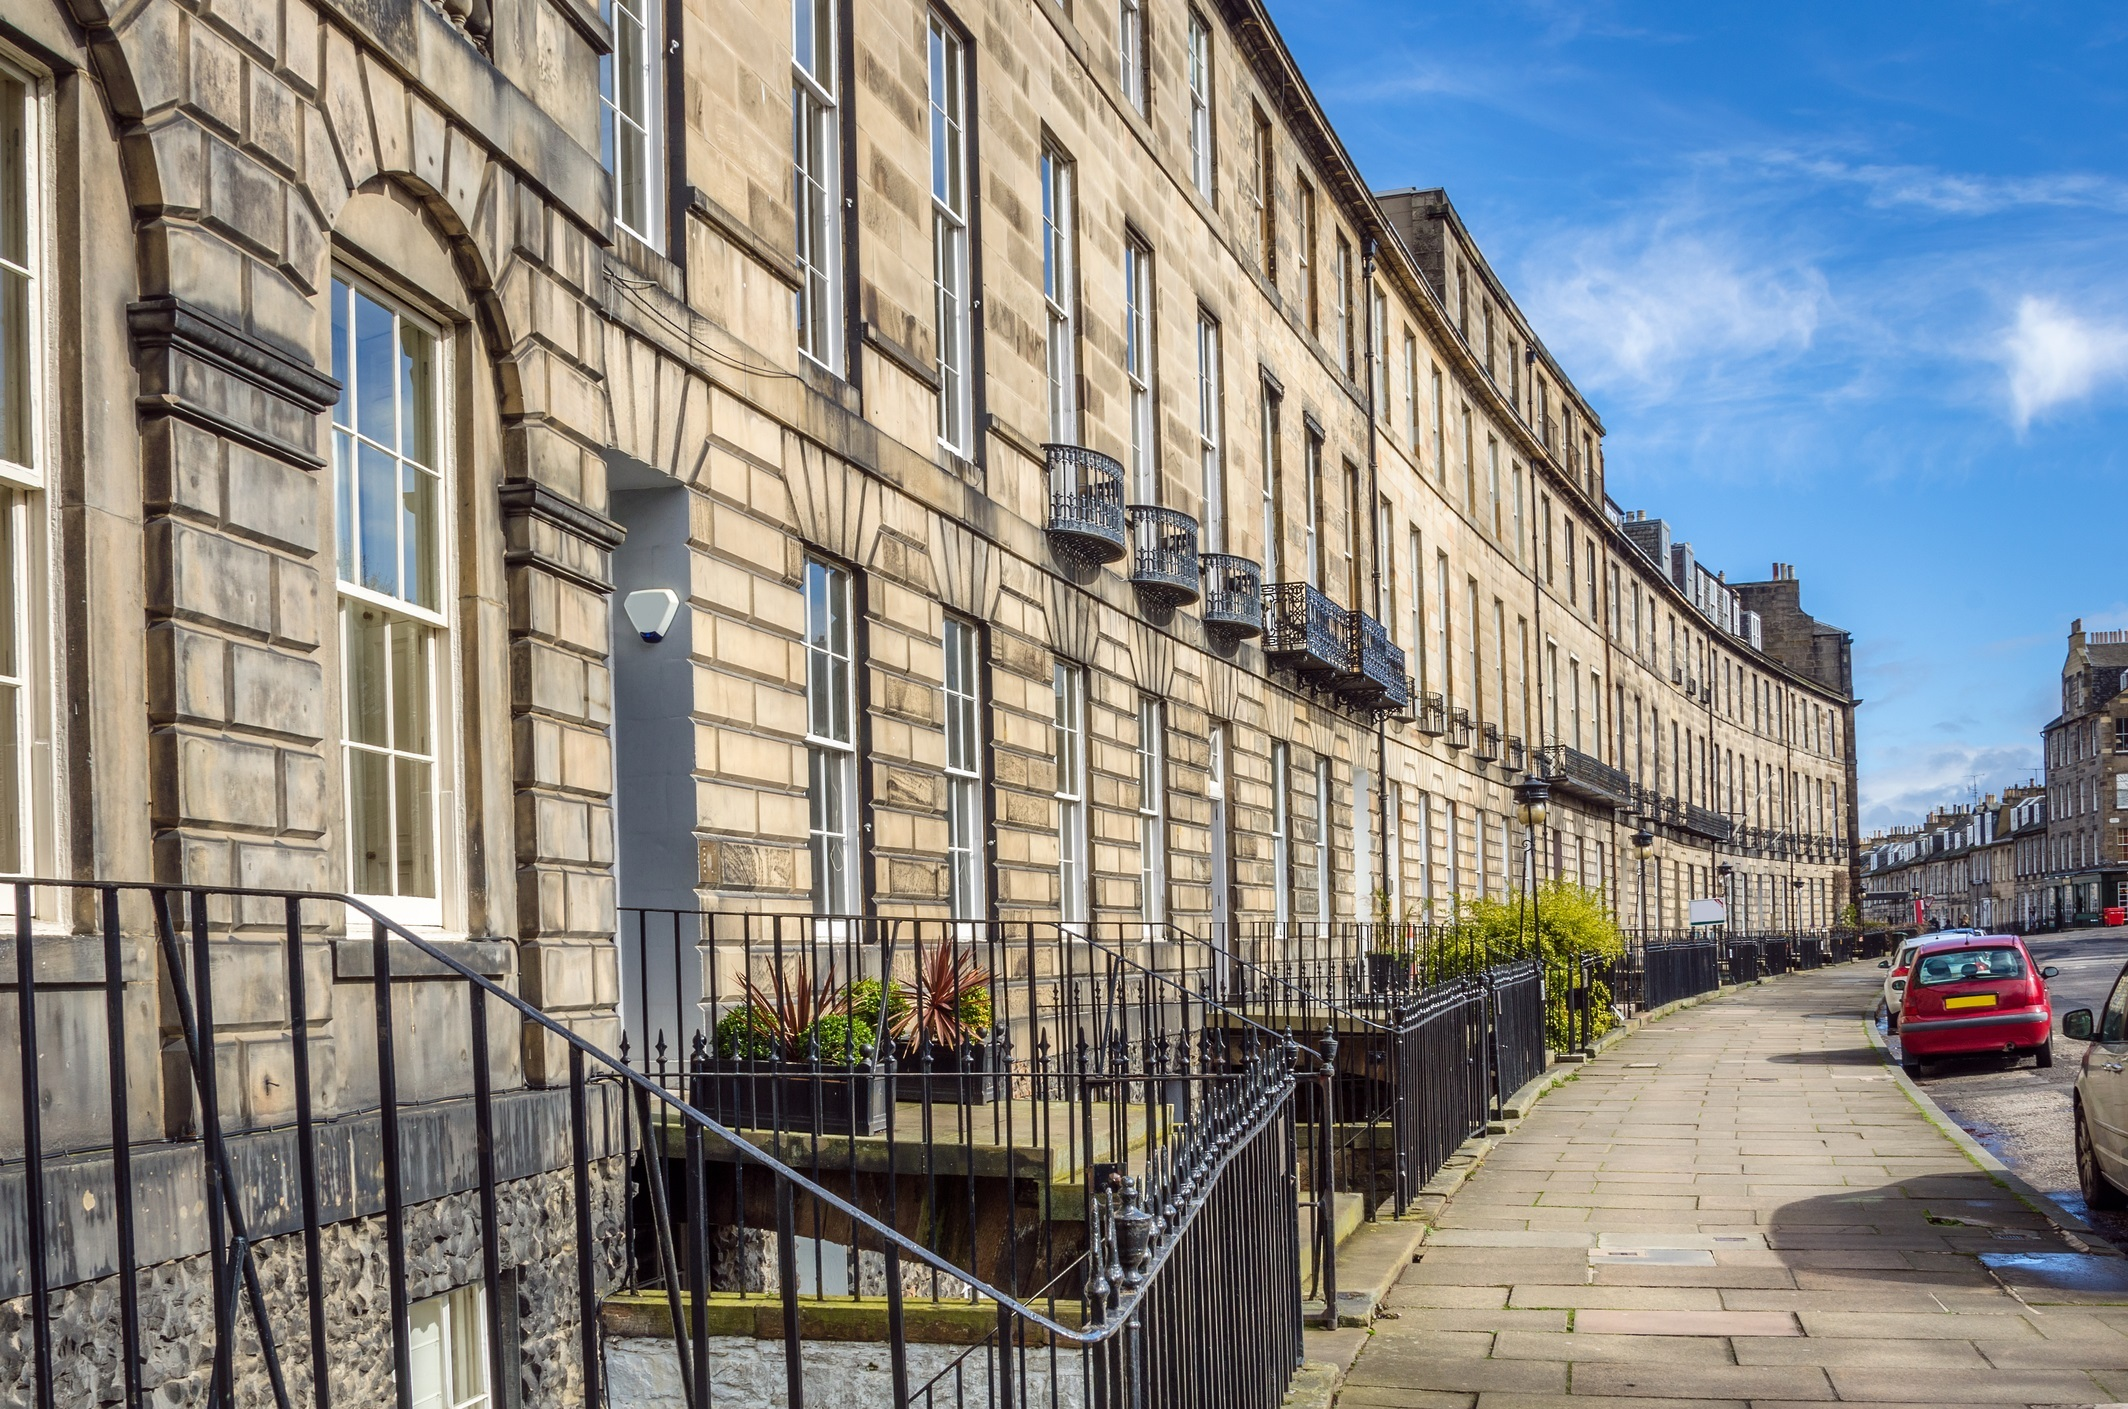 Town Houses in in the New Town of Edinburgh on a Clear Winter Day. The Traditional Stone Buildings line a curving cobbled pavement..